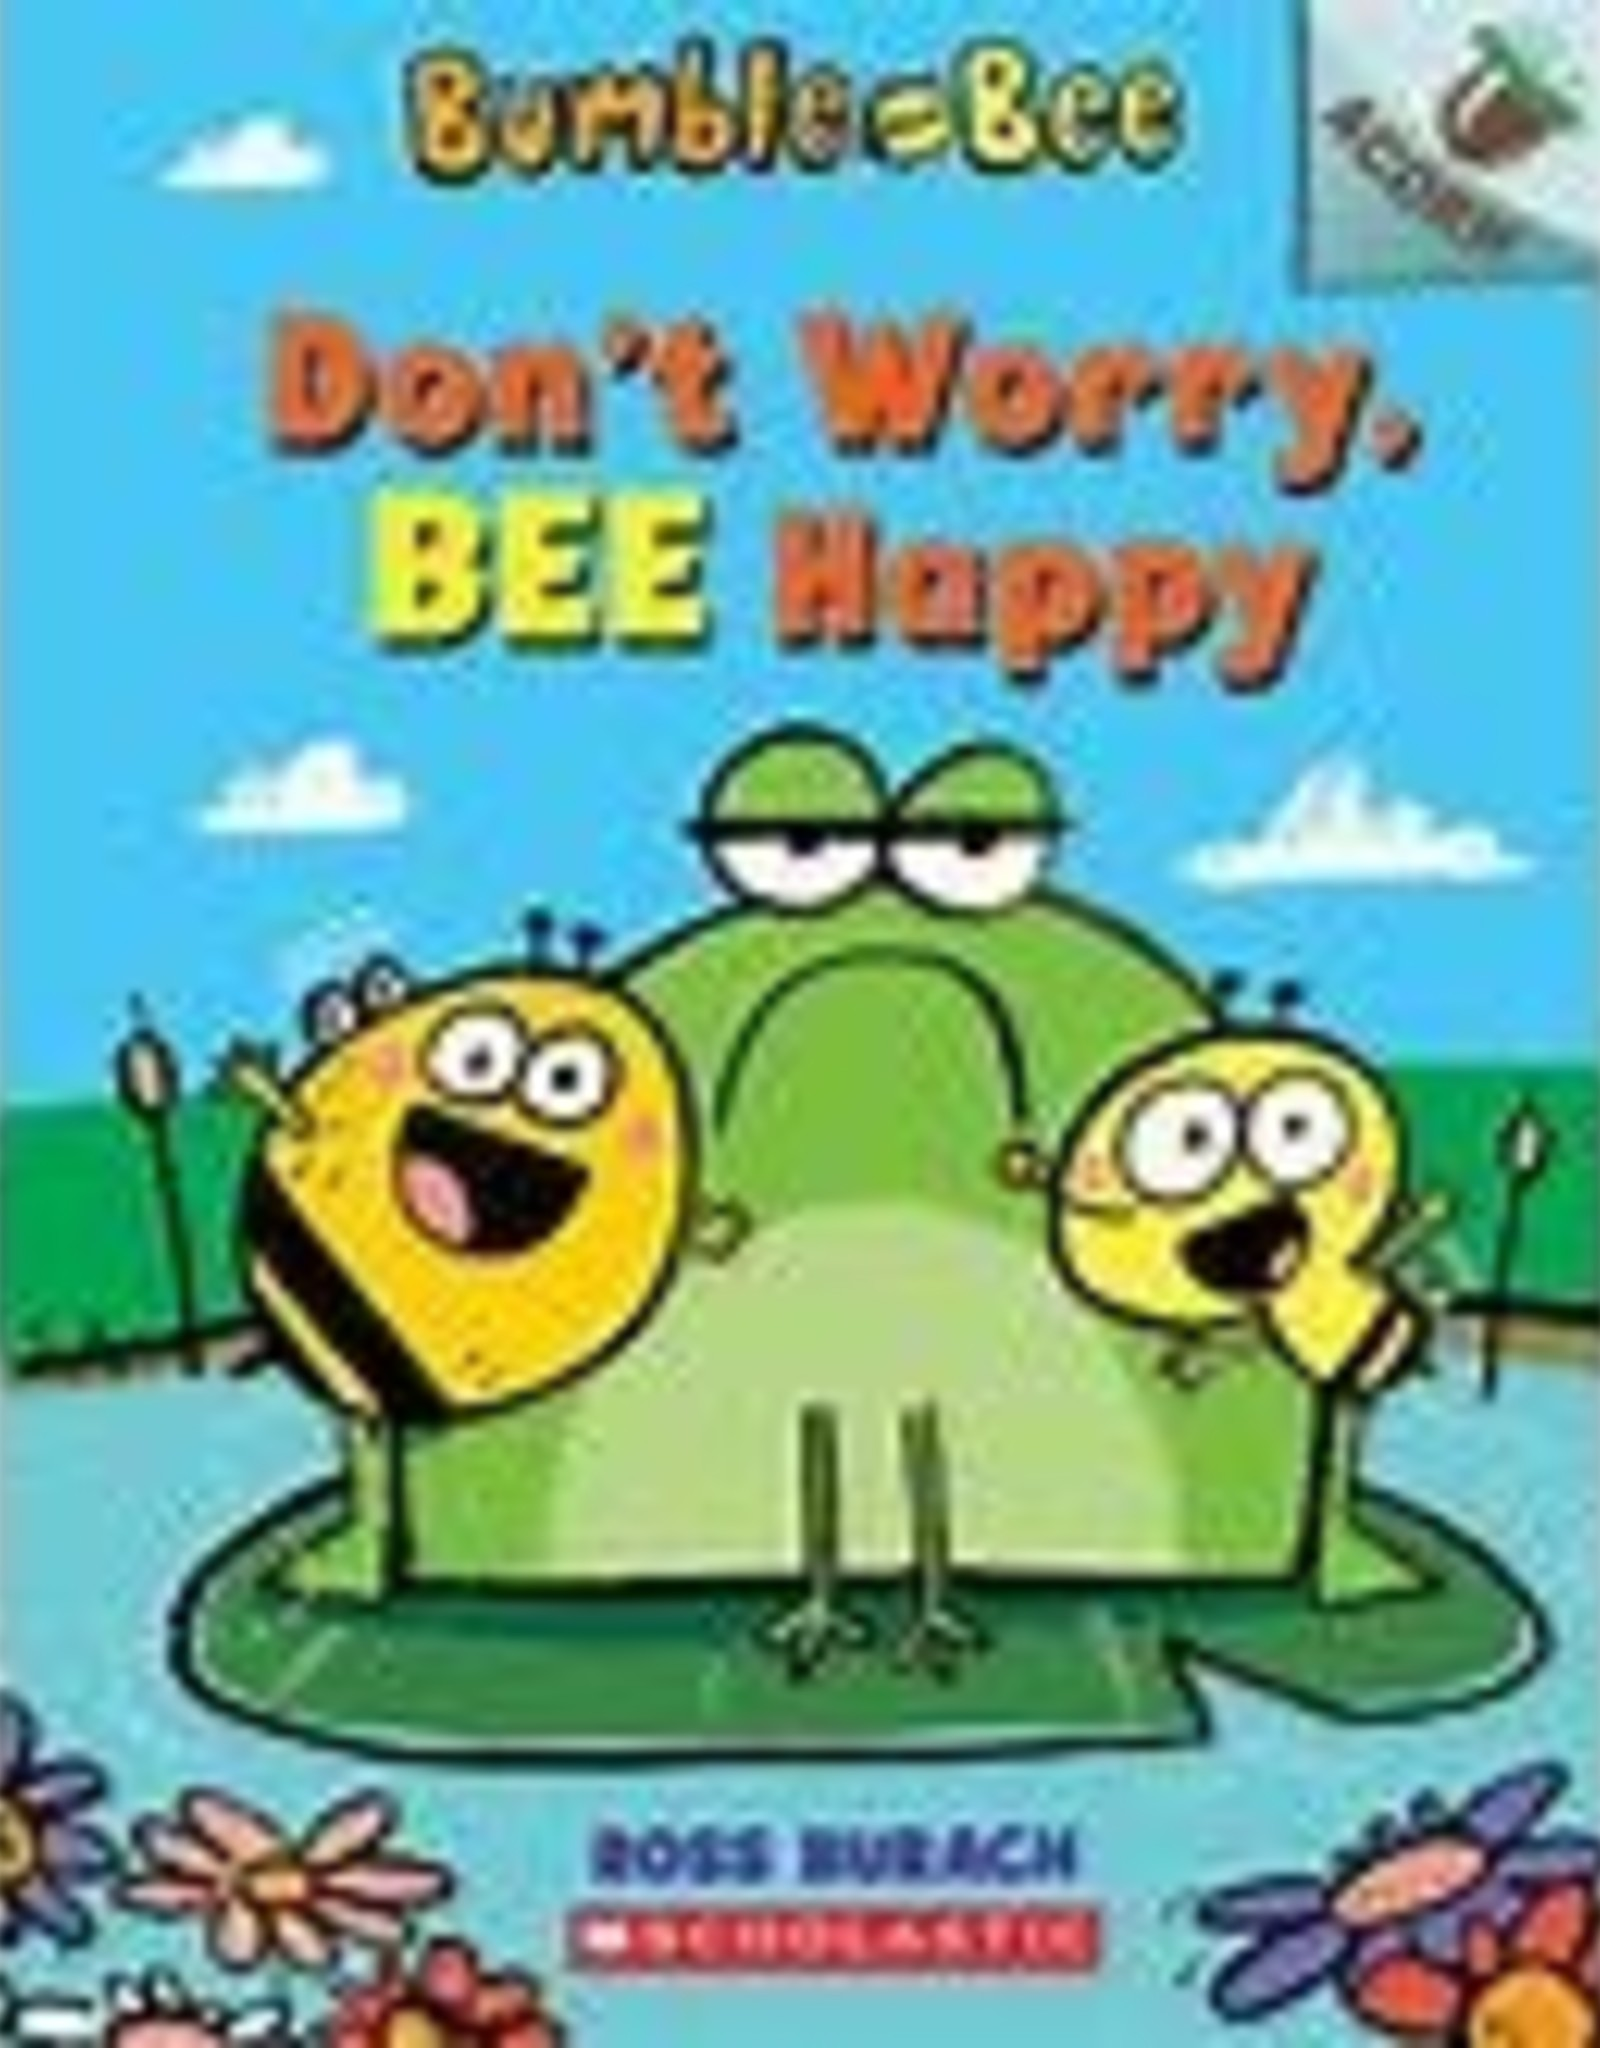 Scholastic Bumble and Bee: Don't Worry